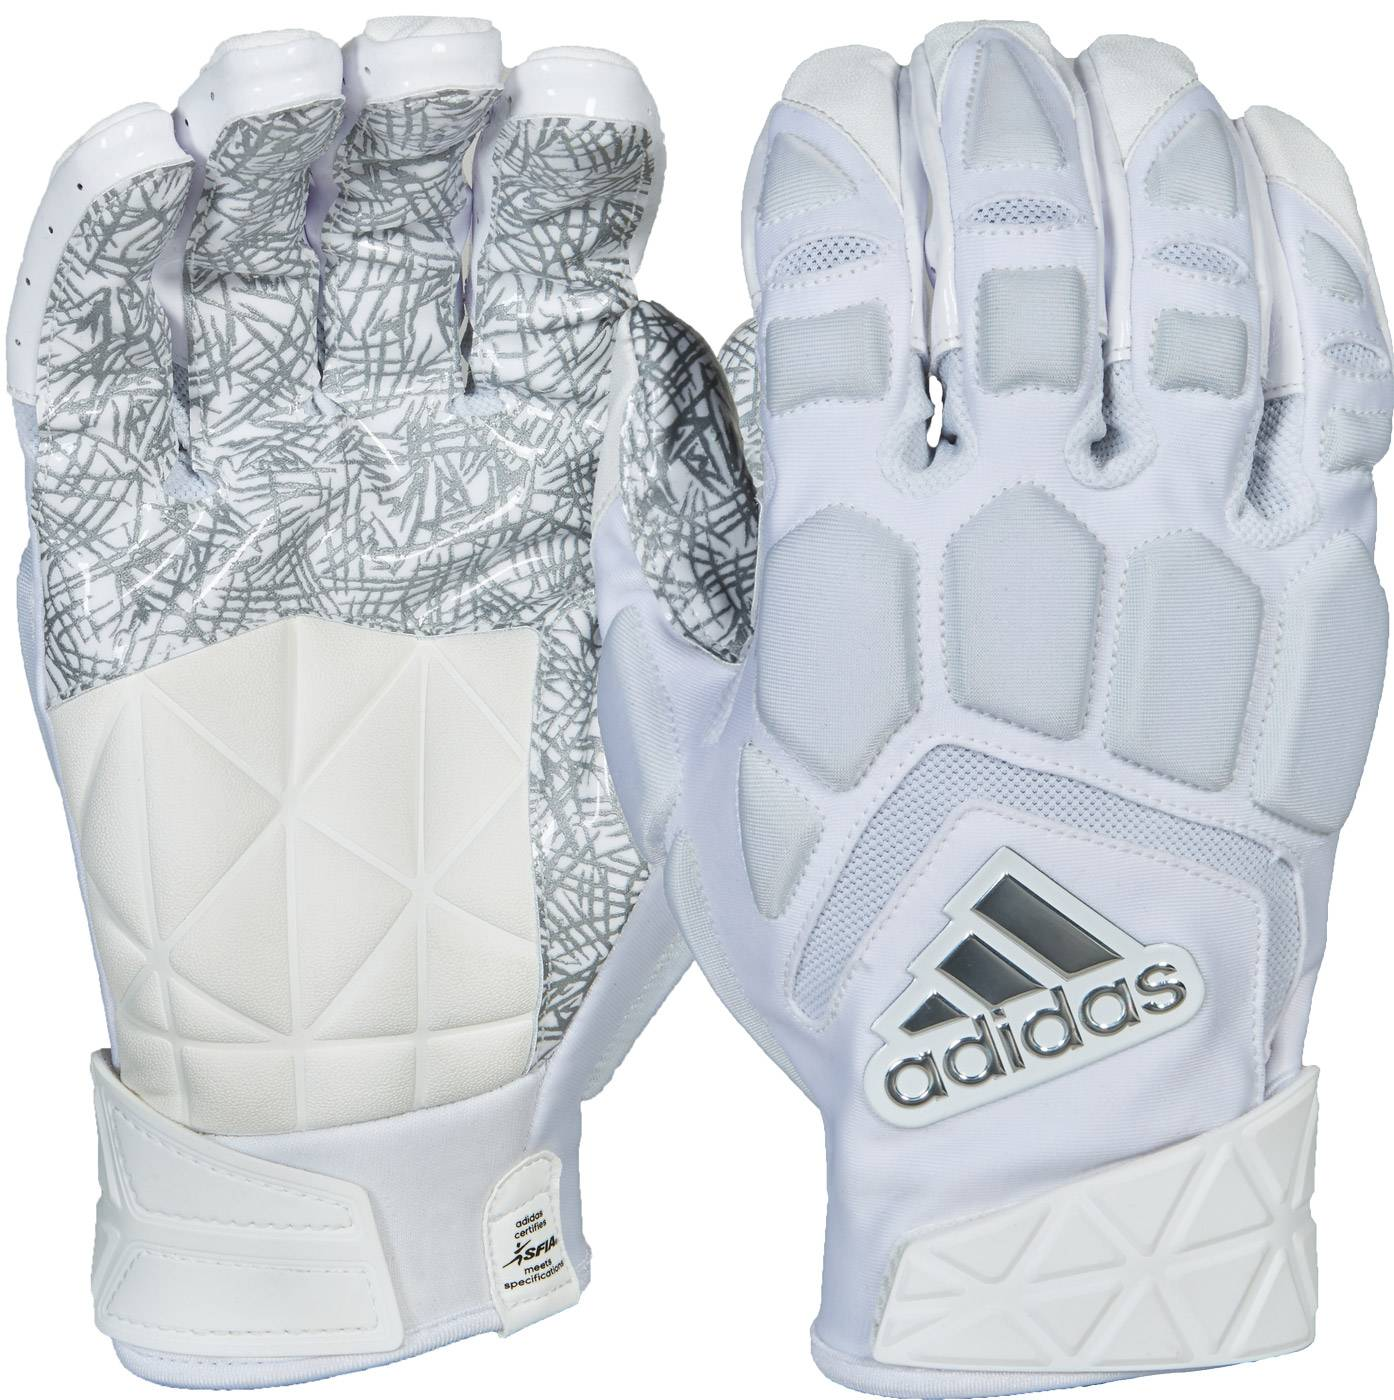 5d9a0f68a2b adidas Freak Max Adult Football Lineman Gloves White XL 8c10. About this  product. Picture 1 of 2  Picture 2 of 2